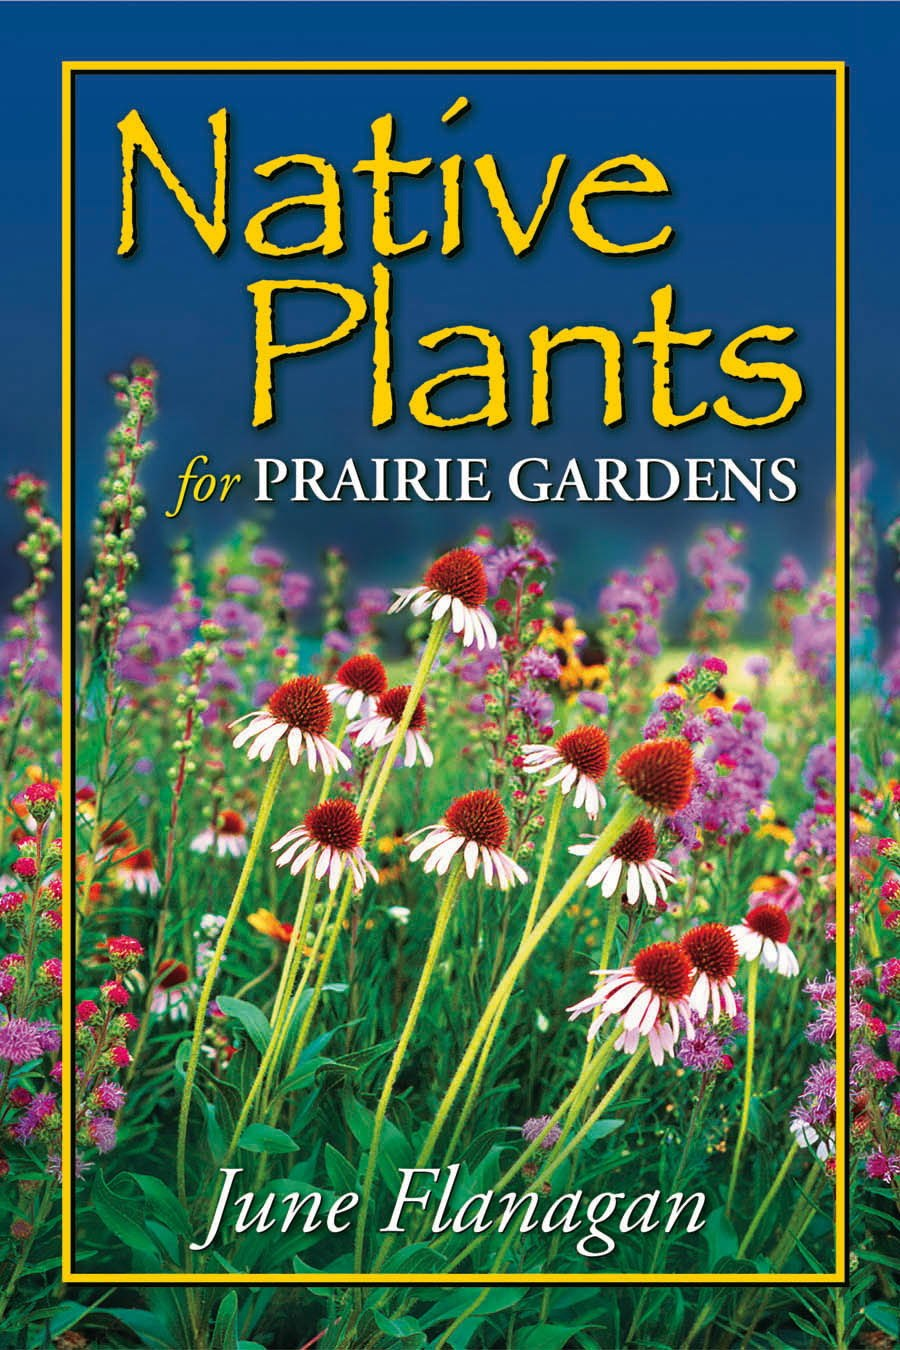 Native Plants book cover